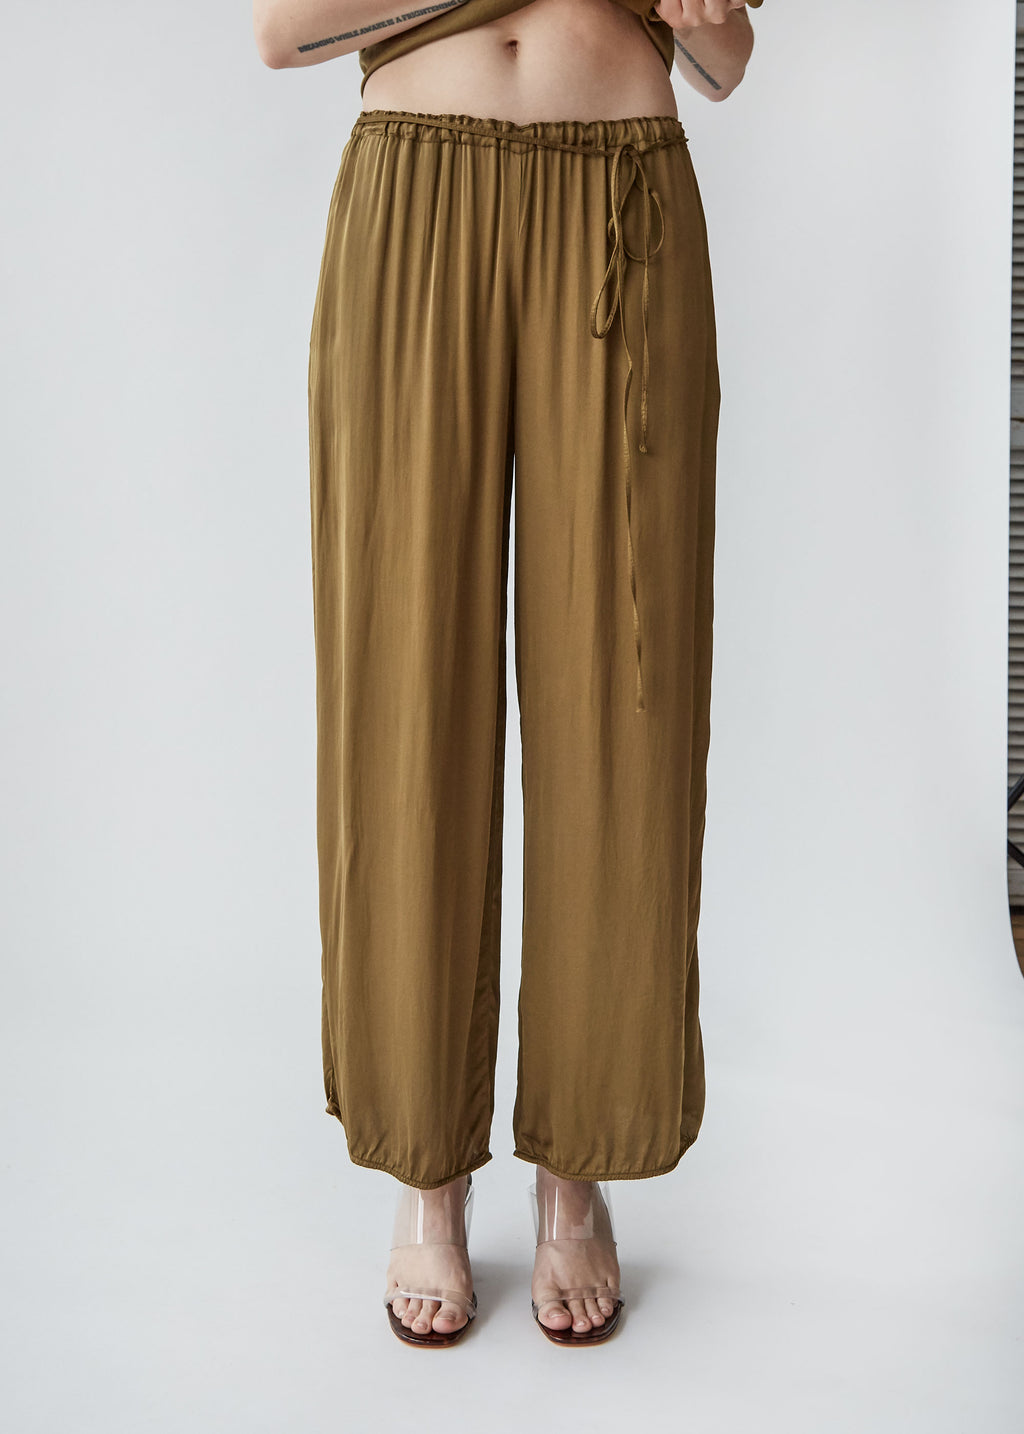 Culotte in Tobacco - SOLD OUT